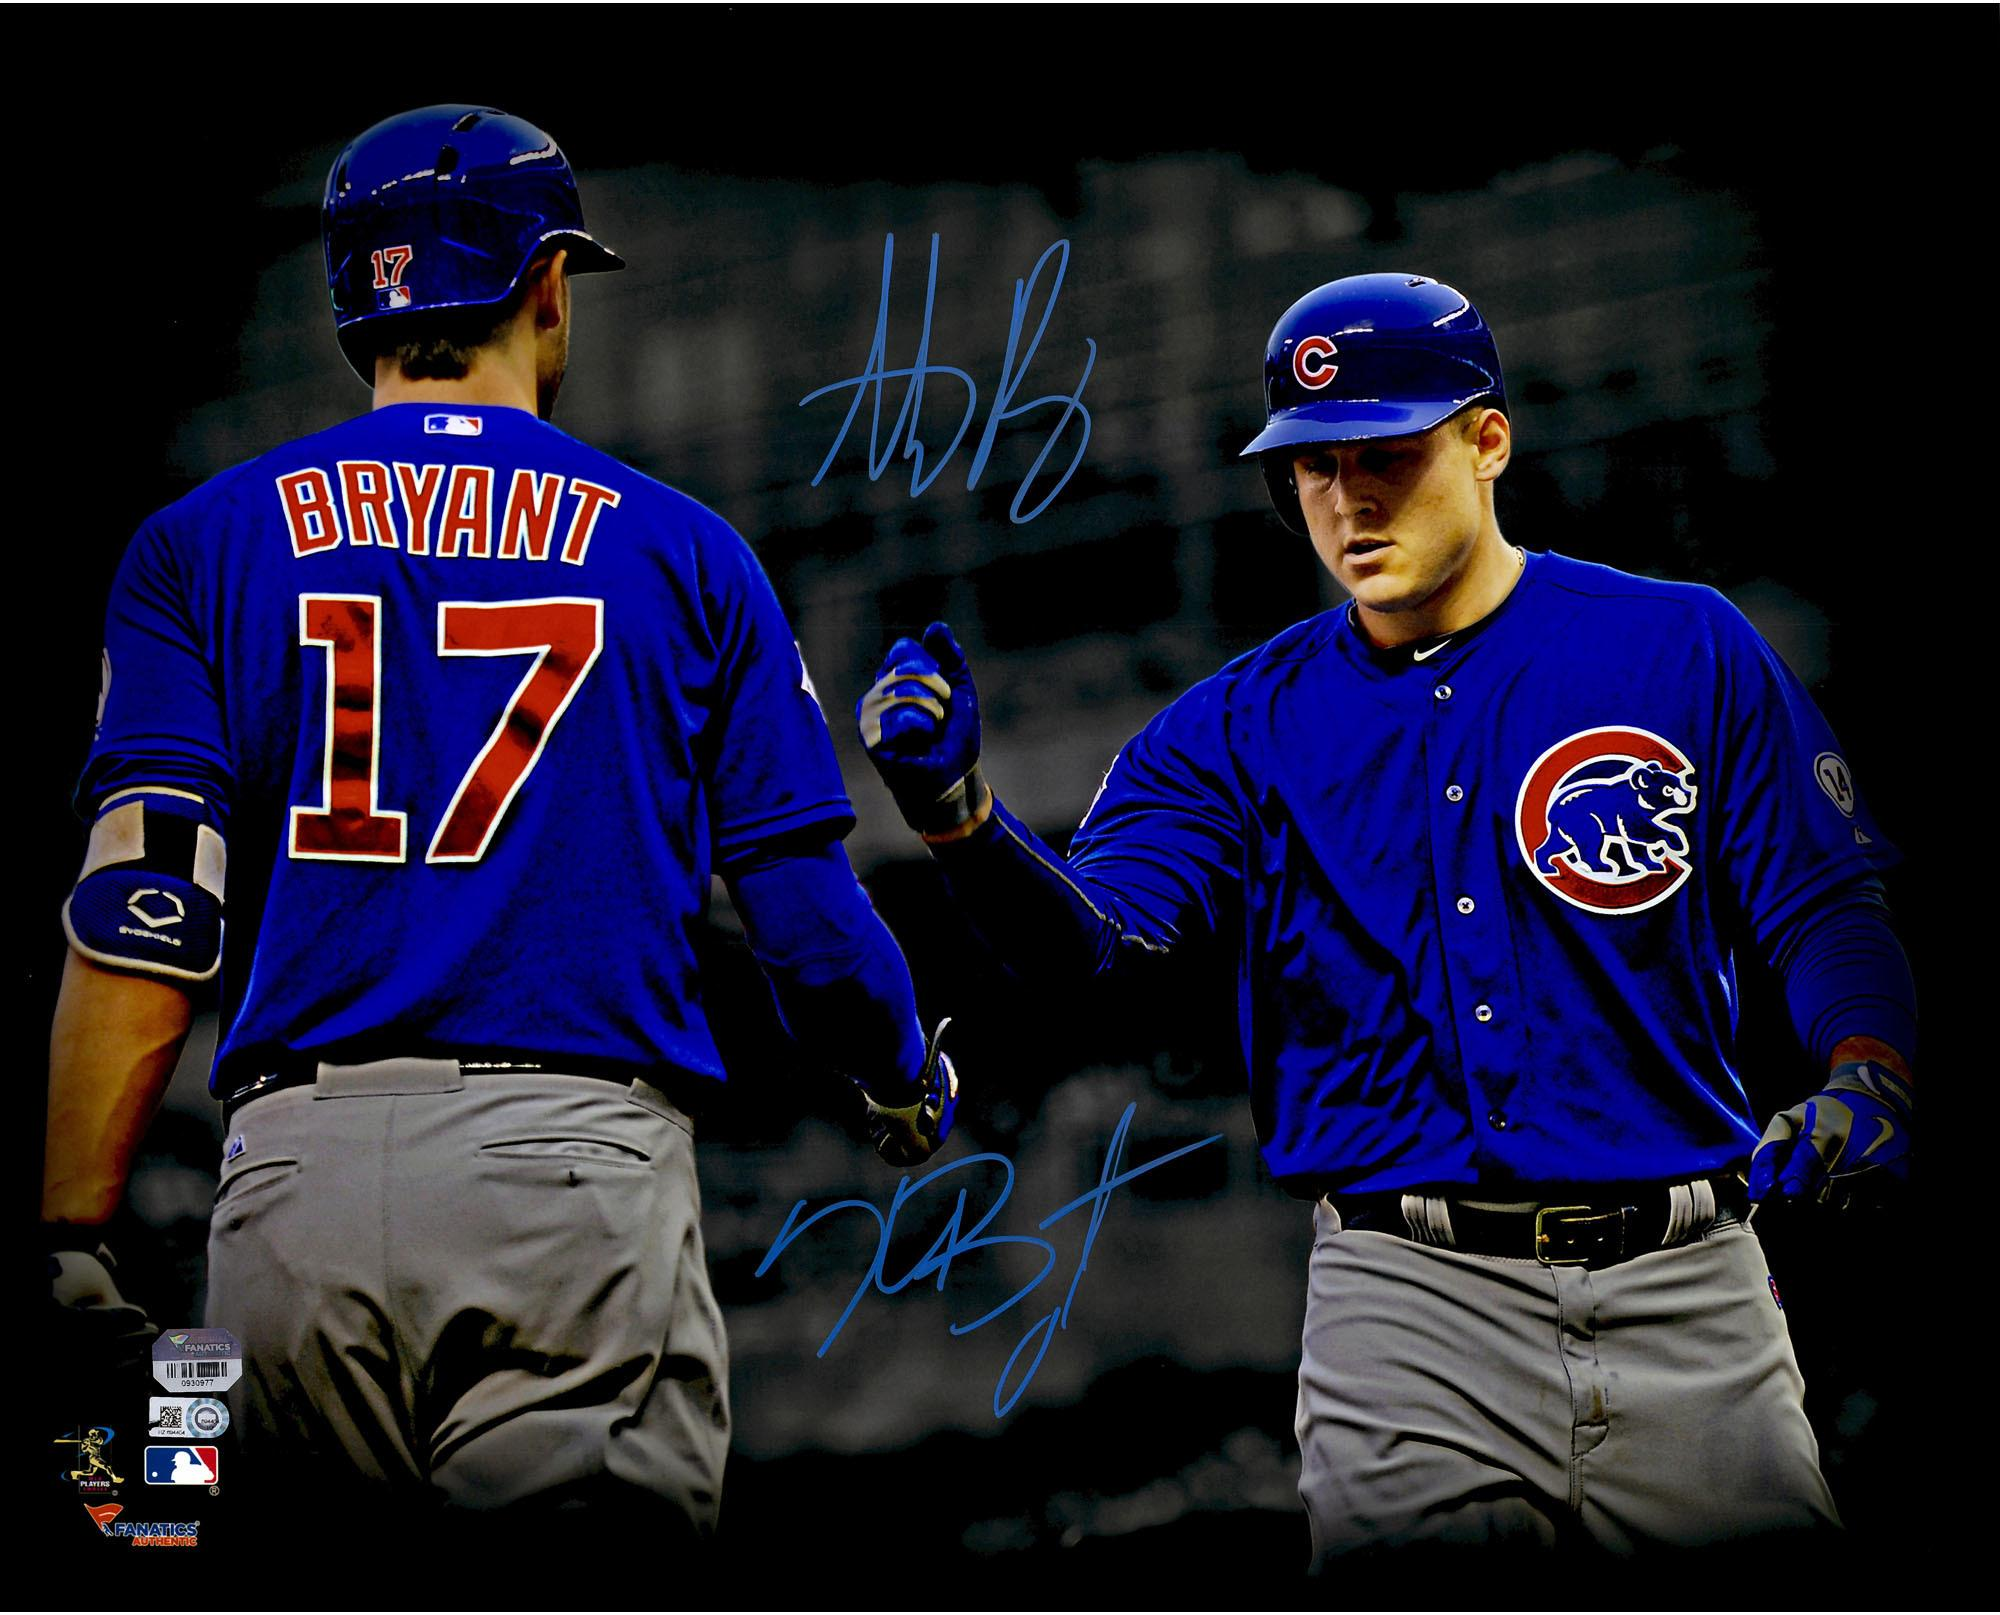 newest 2f3e9 c6d88 Anthony Rizzo and Kris Bryant Chicago Cubs Autographed 16